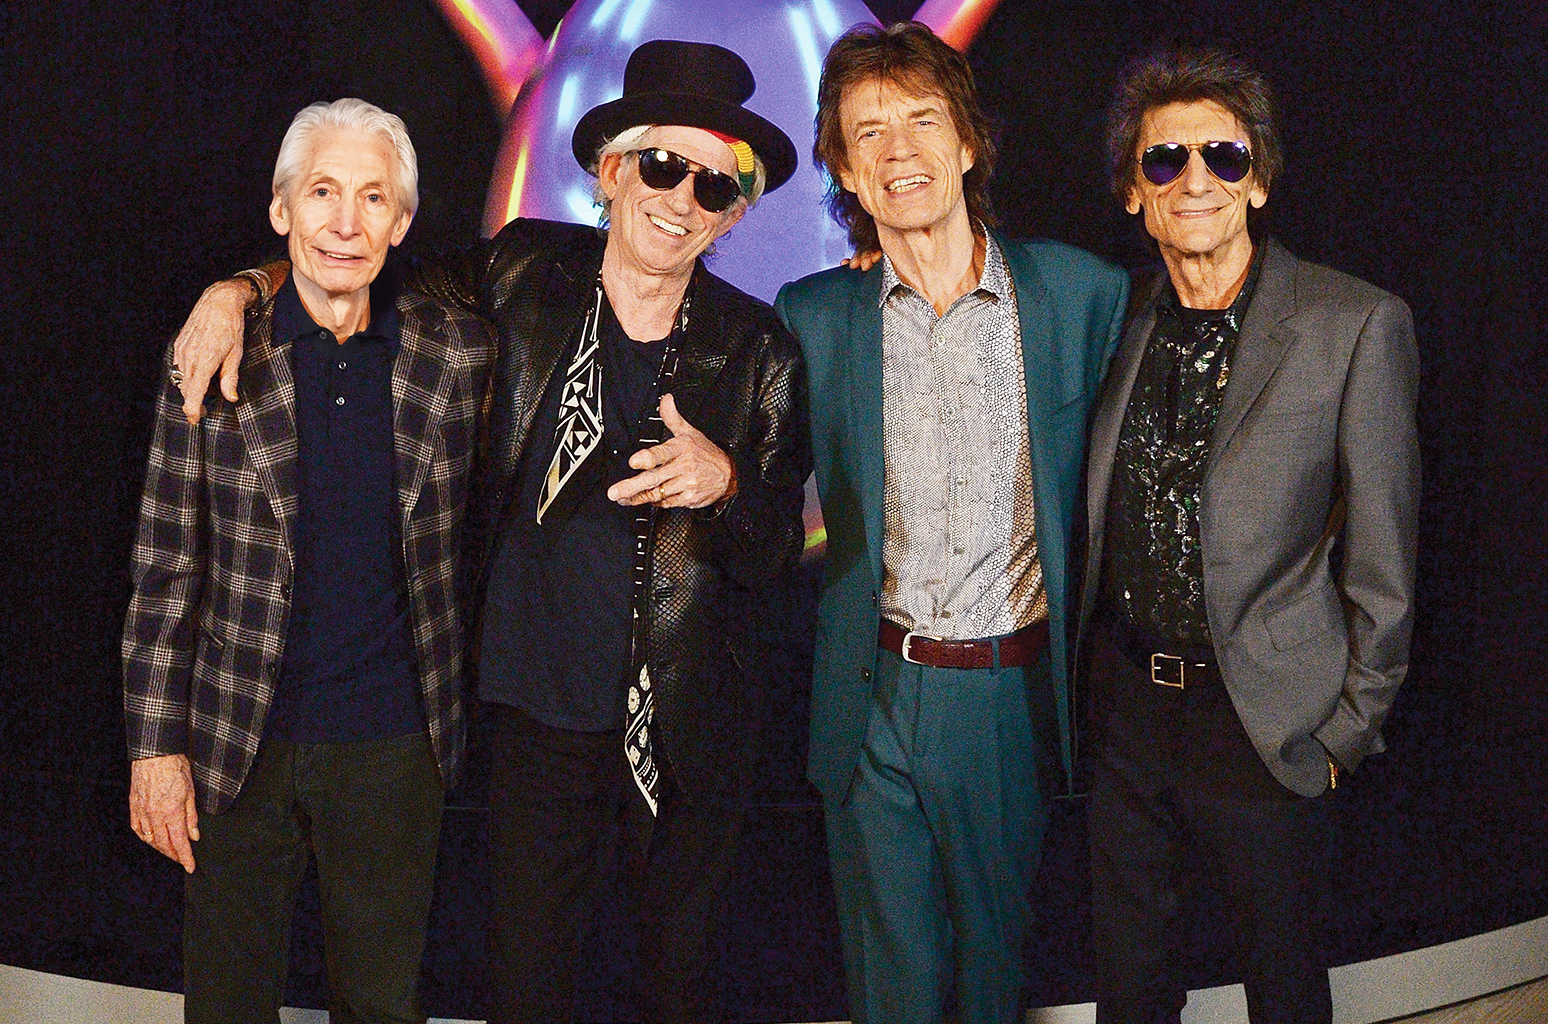 Rolling Stones, What do the rolling stones look like now, Rolling Stones 2017, celebs, Music